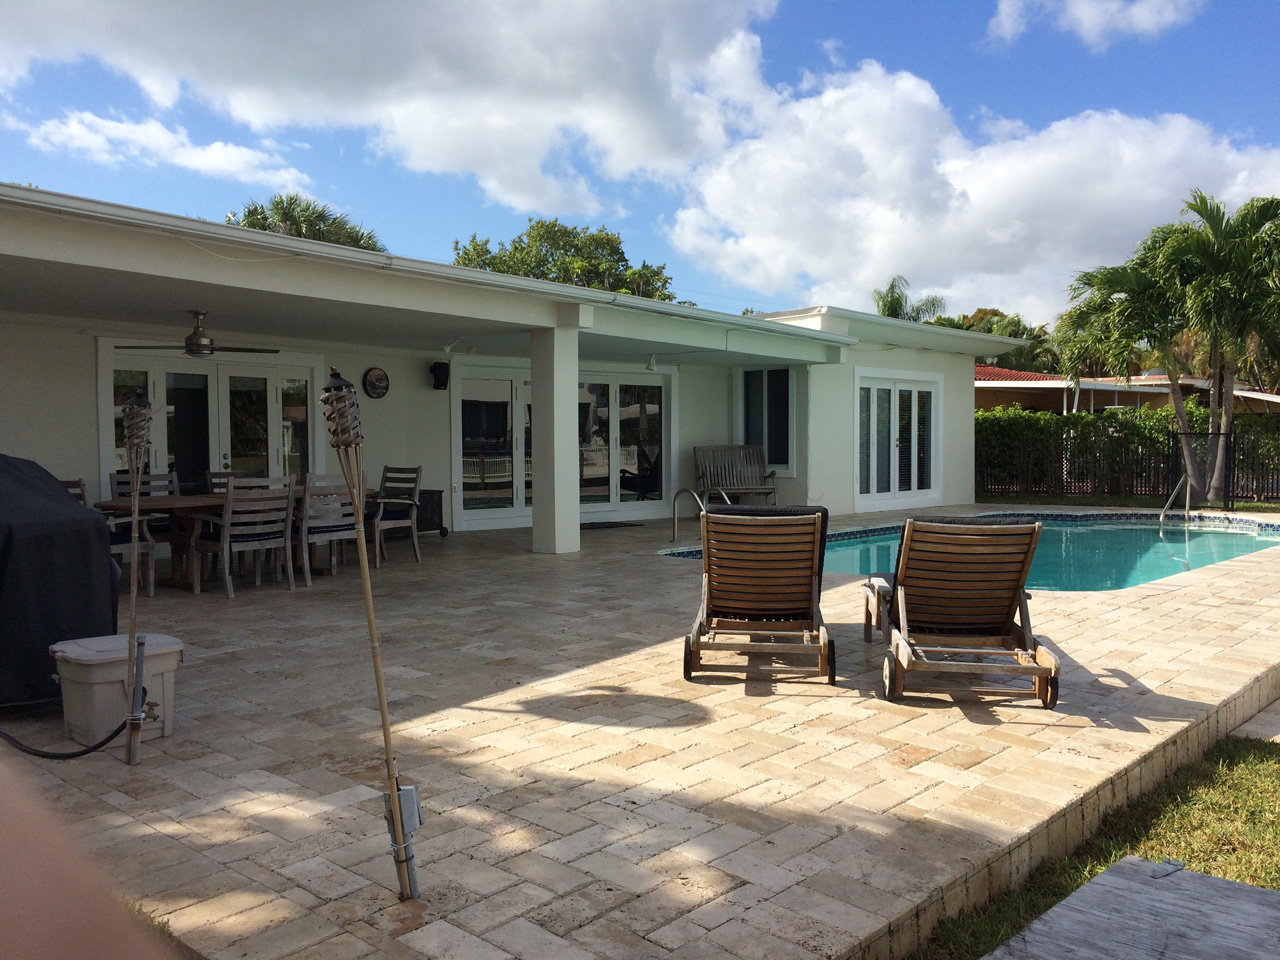 Outdoor entertainment area in the miami home for sale